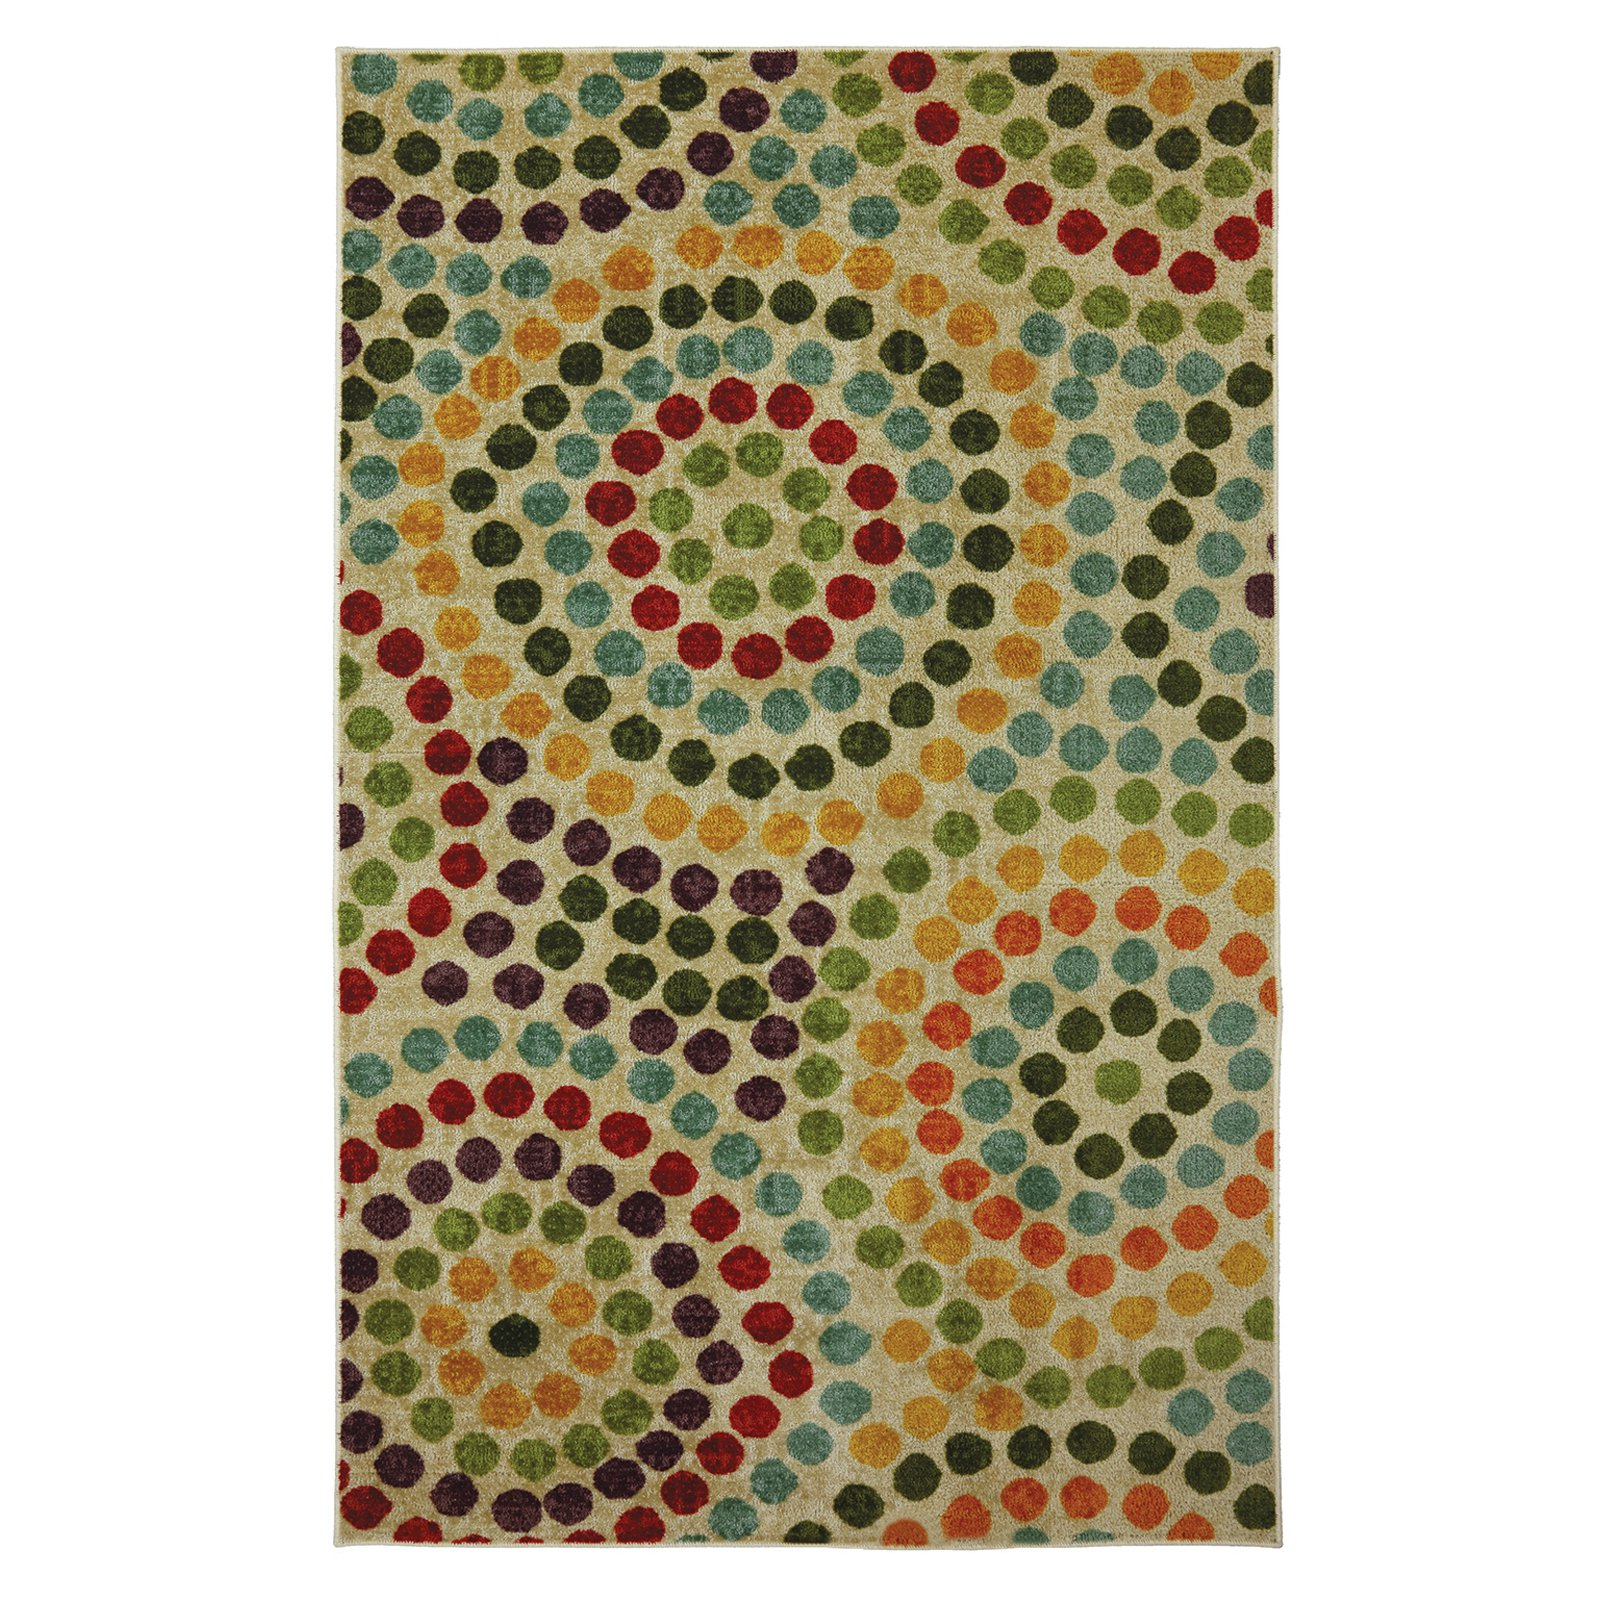 Mohawk Home Strata Mosaic Stones Multicolored Area Rug